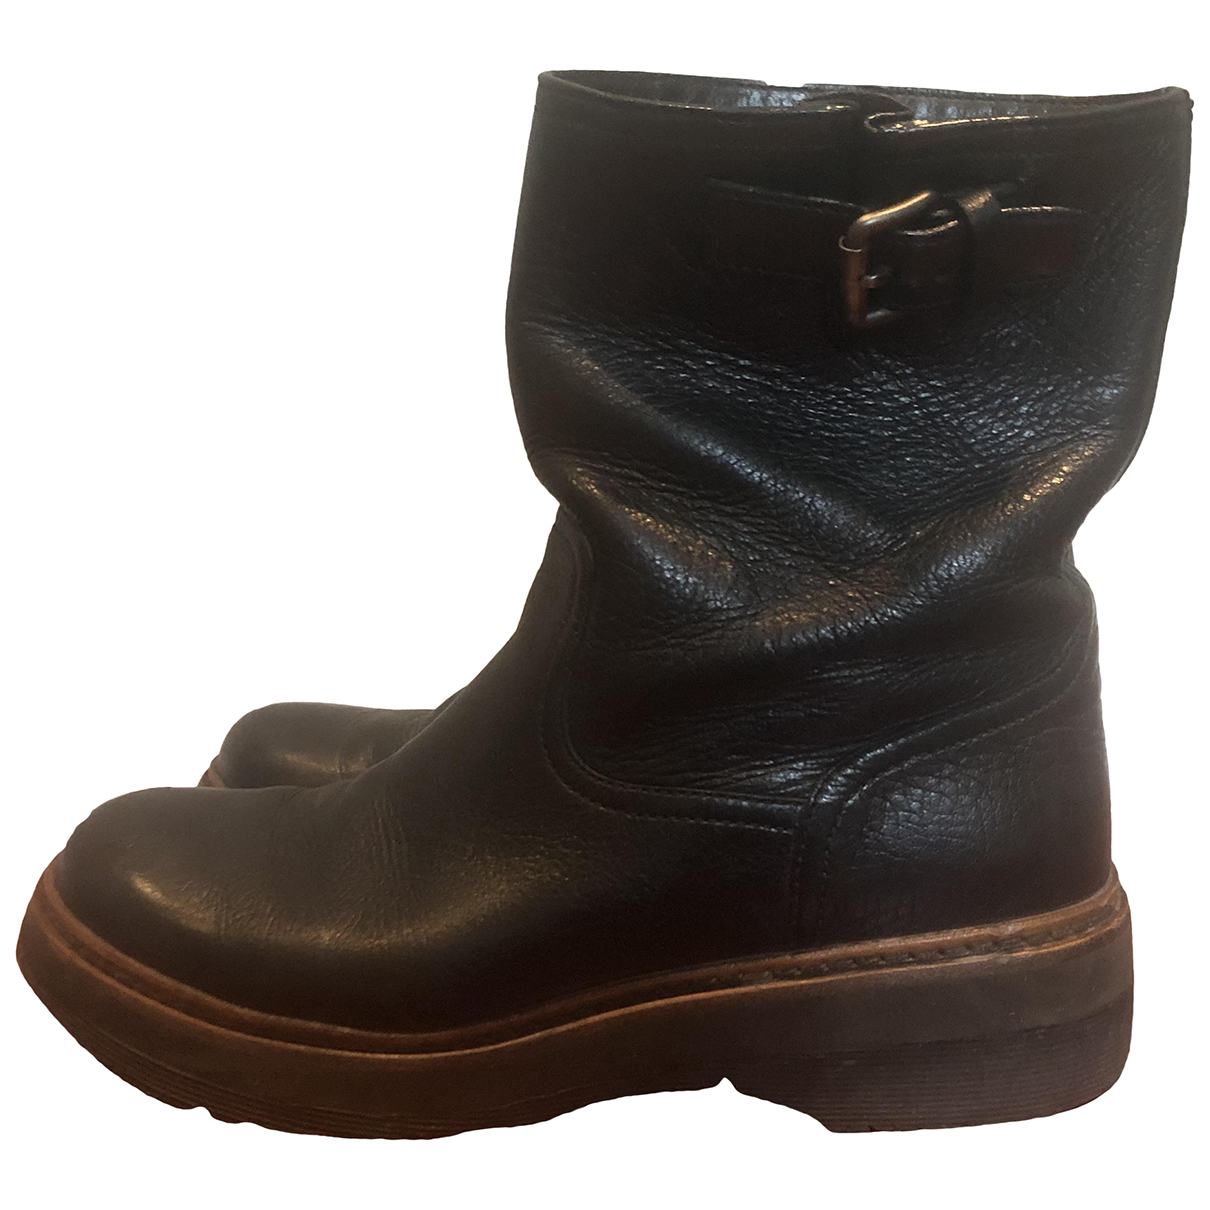 Prada N Black Leather Ankle boots for Women 37.5 EU